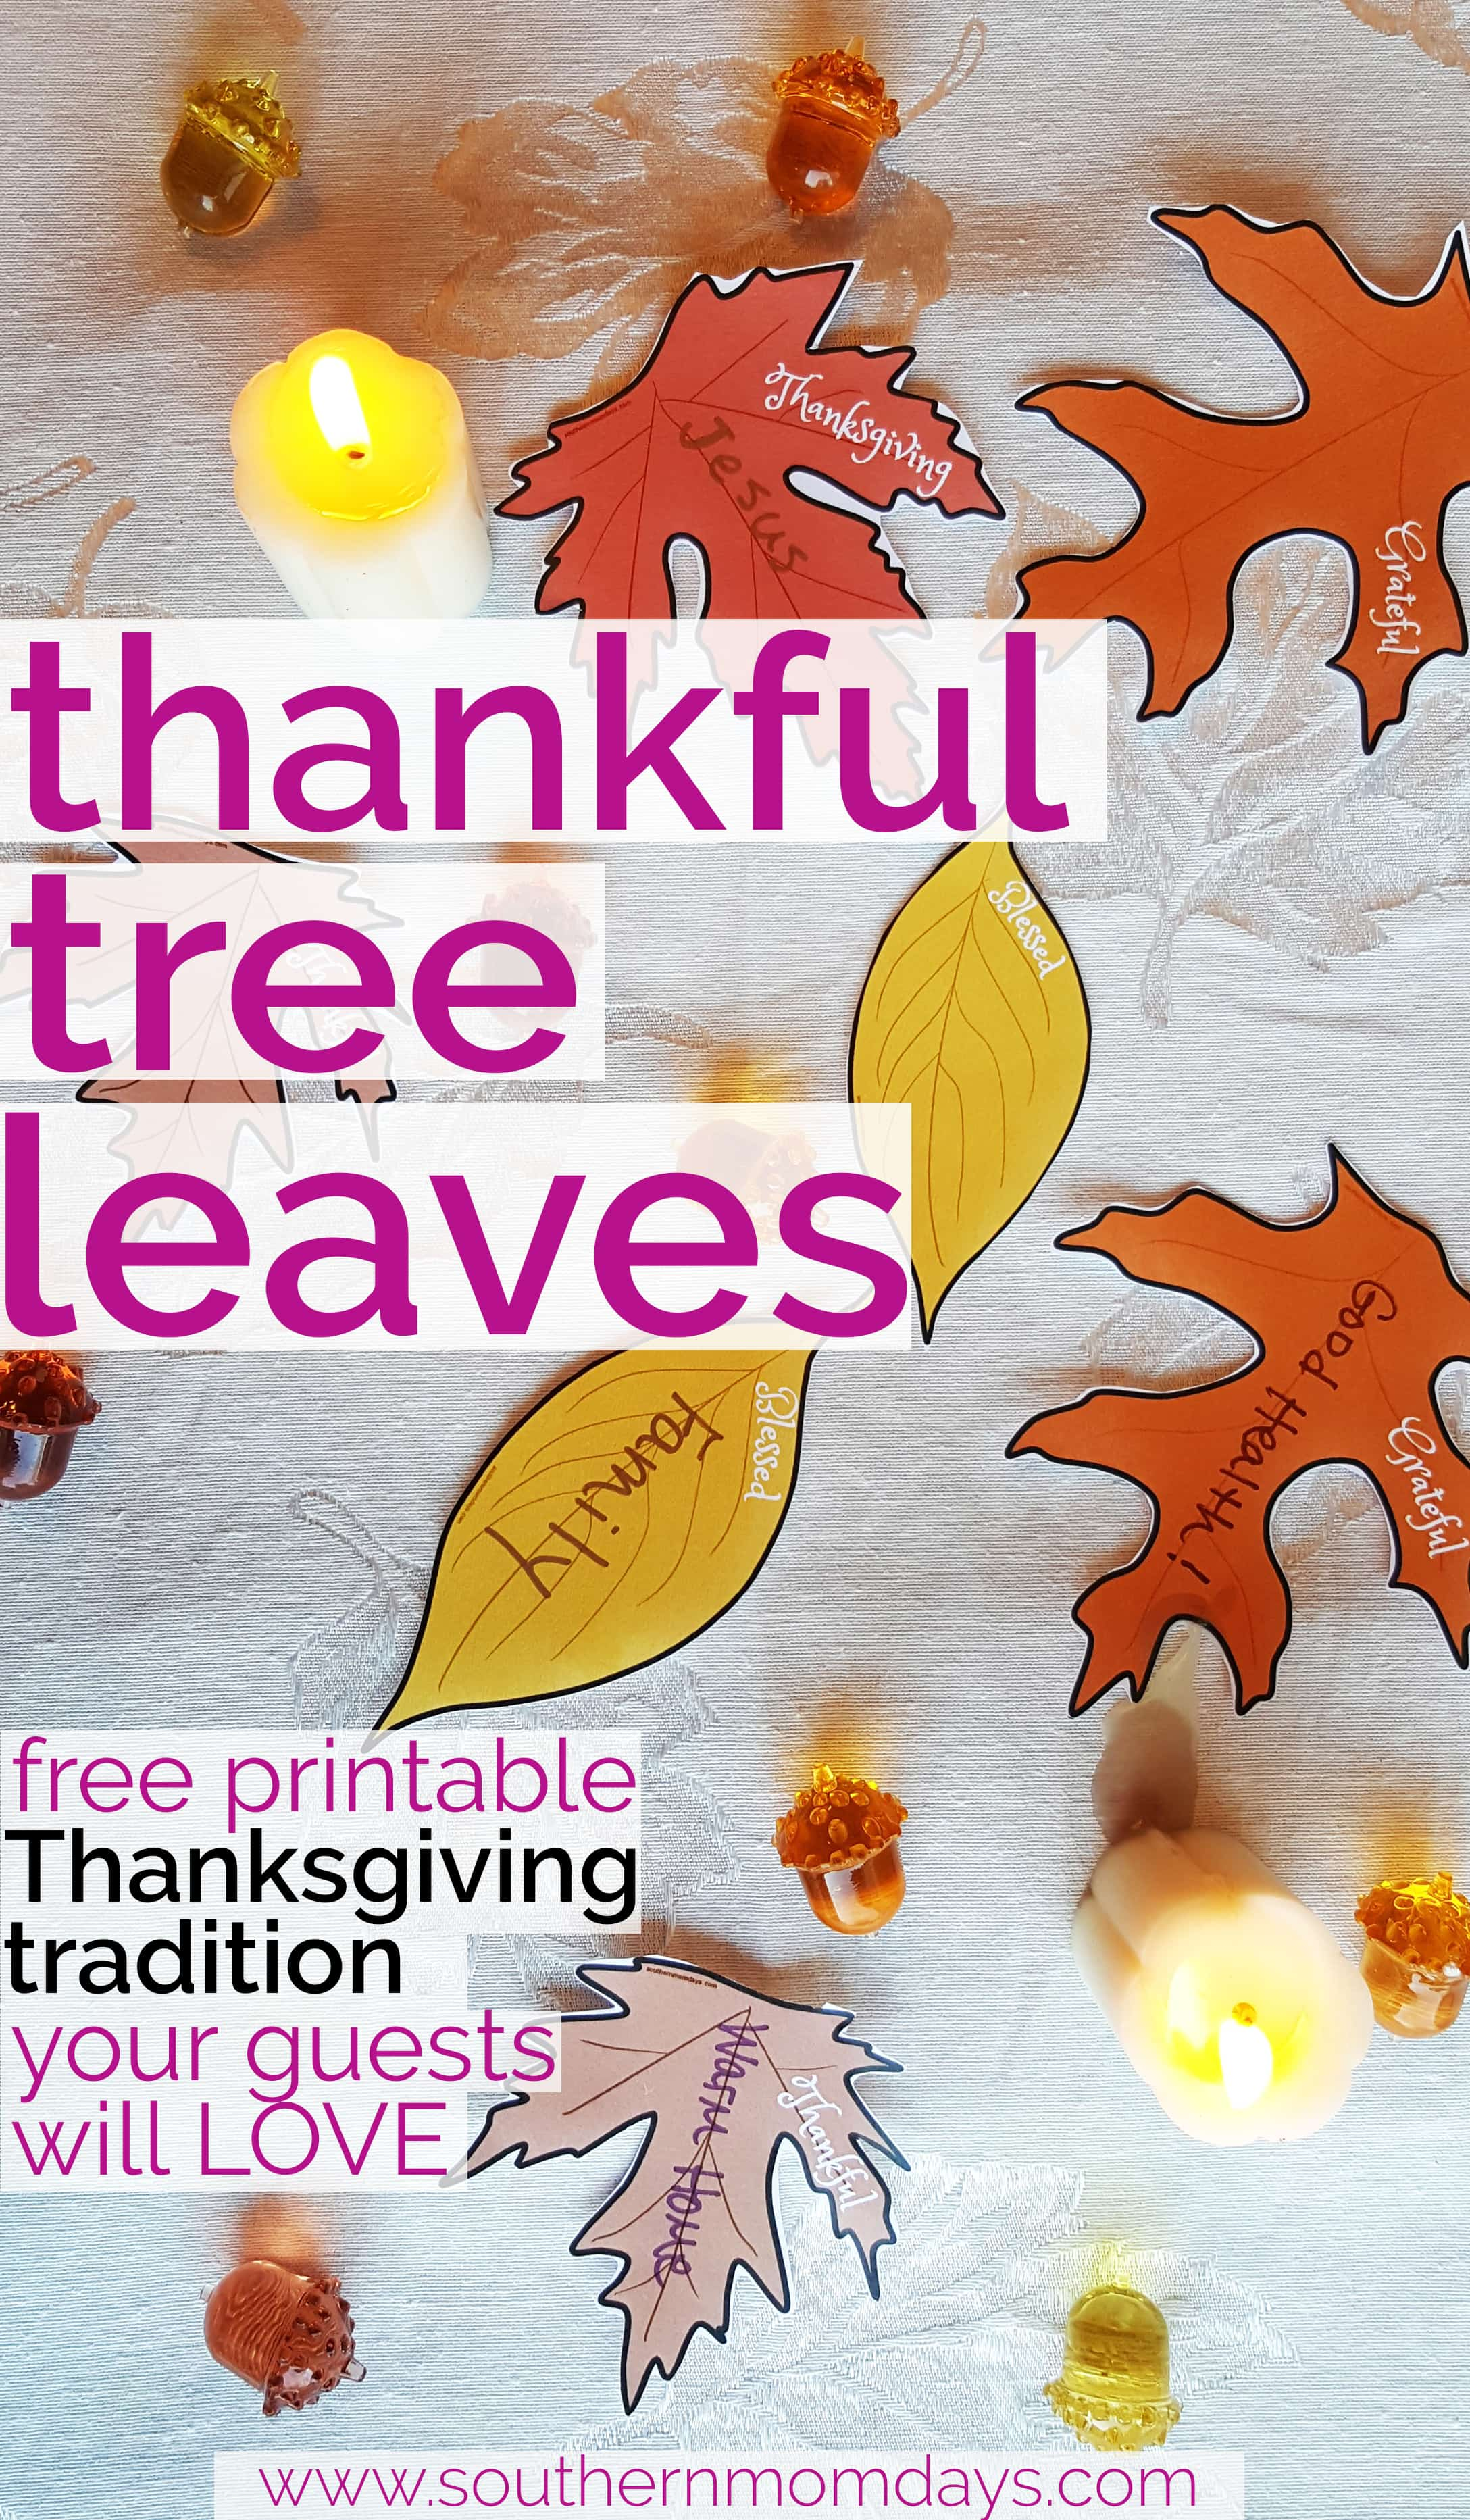 photograph relating to Thankful Leaves Printable named Grateful Tree Leaves for Thanksgiving Desk Décor - Southern